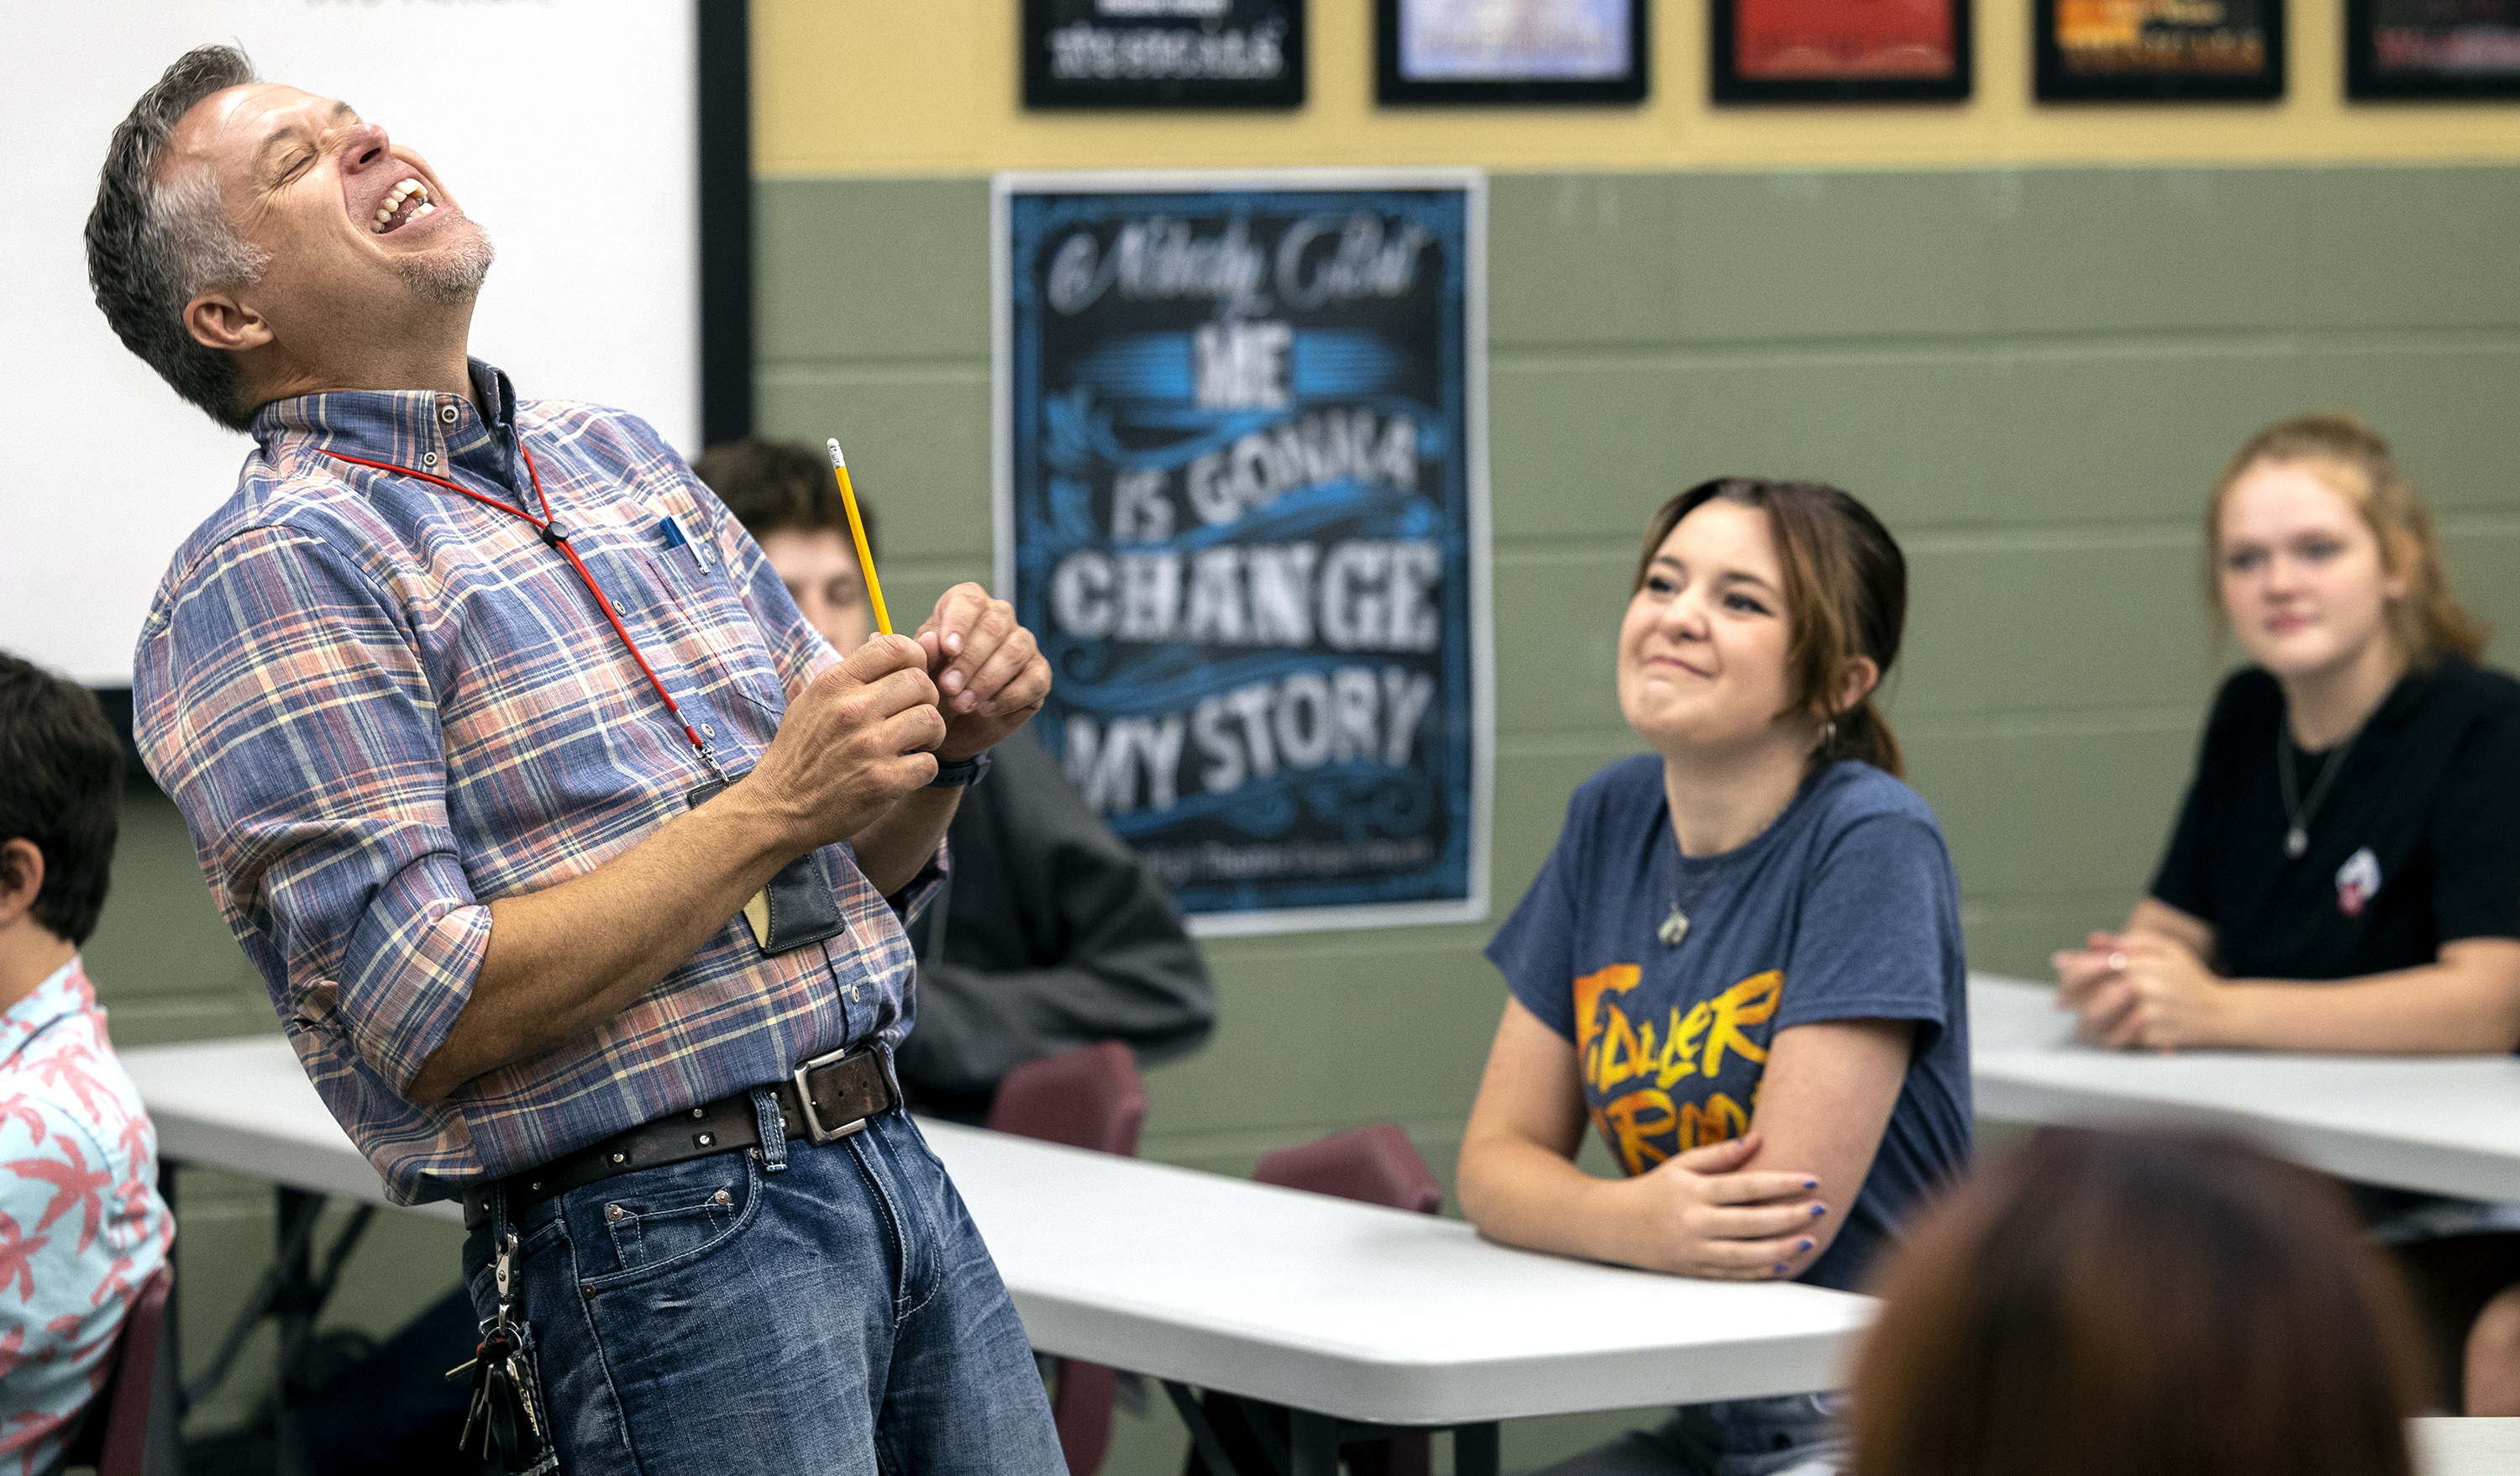 Weber High School theater teacher Mark Daniels laughs as he teaches a beginning theater class at the school in Pleasant View, Weber County, on Friday, Sept. 3, 2021. Daniels has been named 2022 Utah Teacher of the Year.